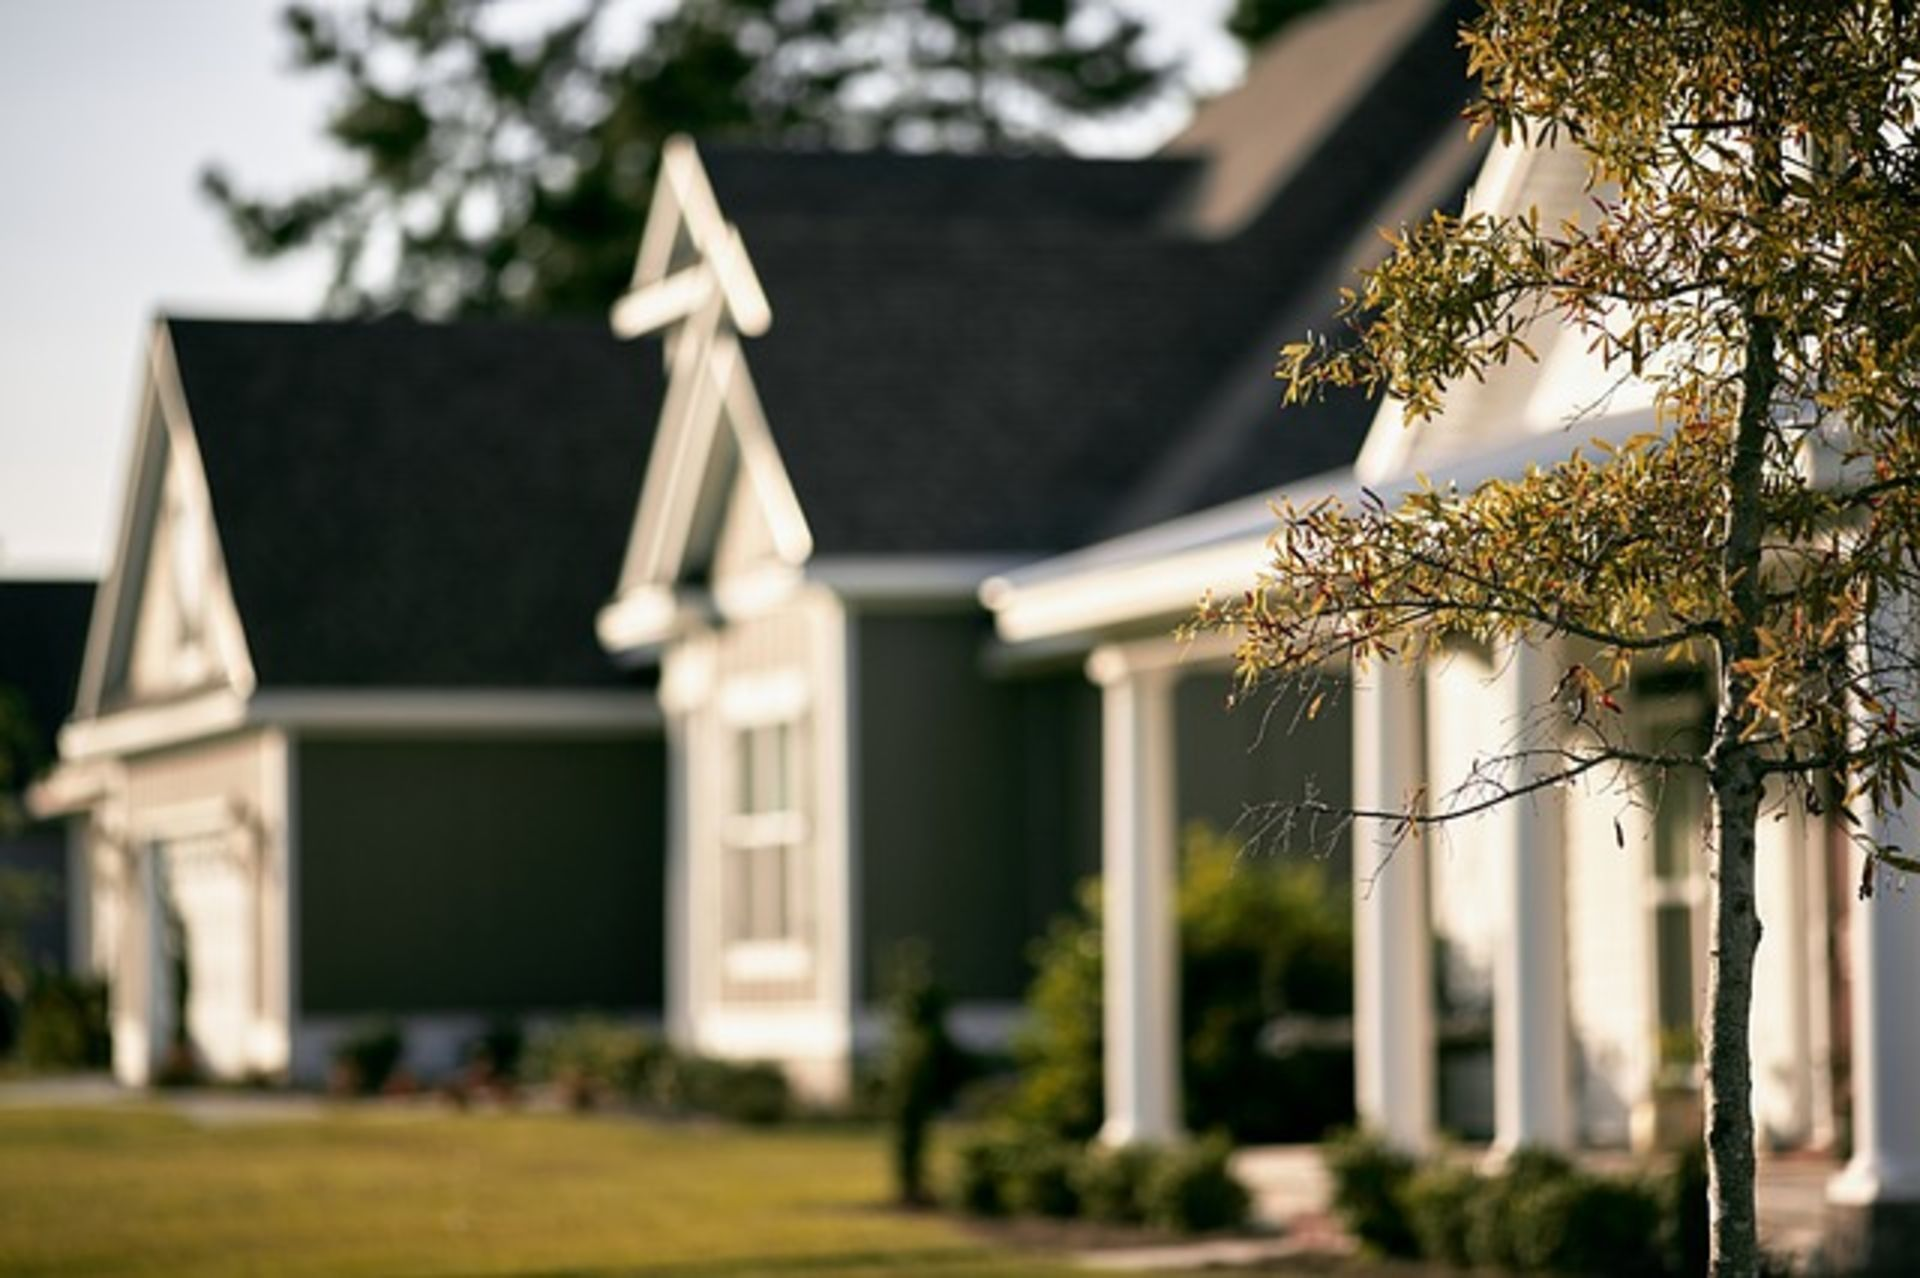 Gated Community: How to Know if it's For You